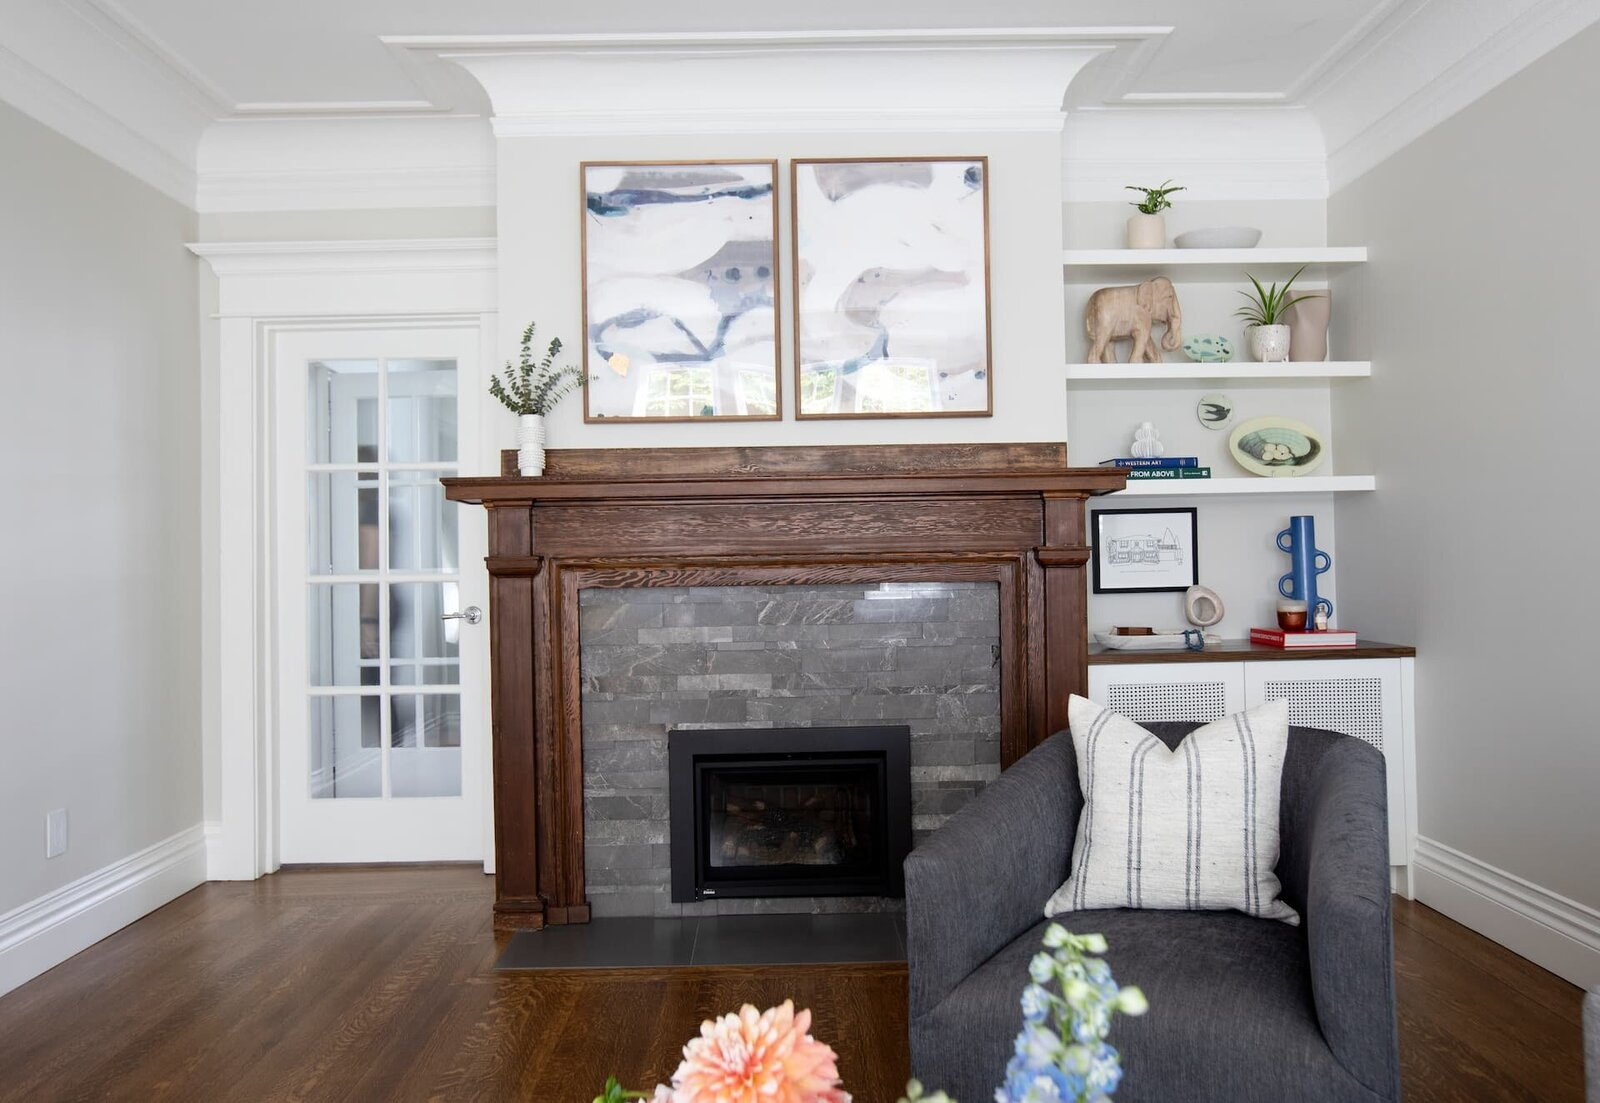 Granville Street l Living Room l Diptych Art over Fireplace with Custom Built-in